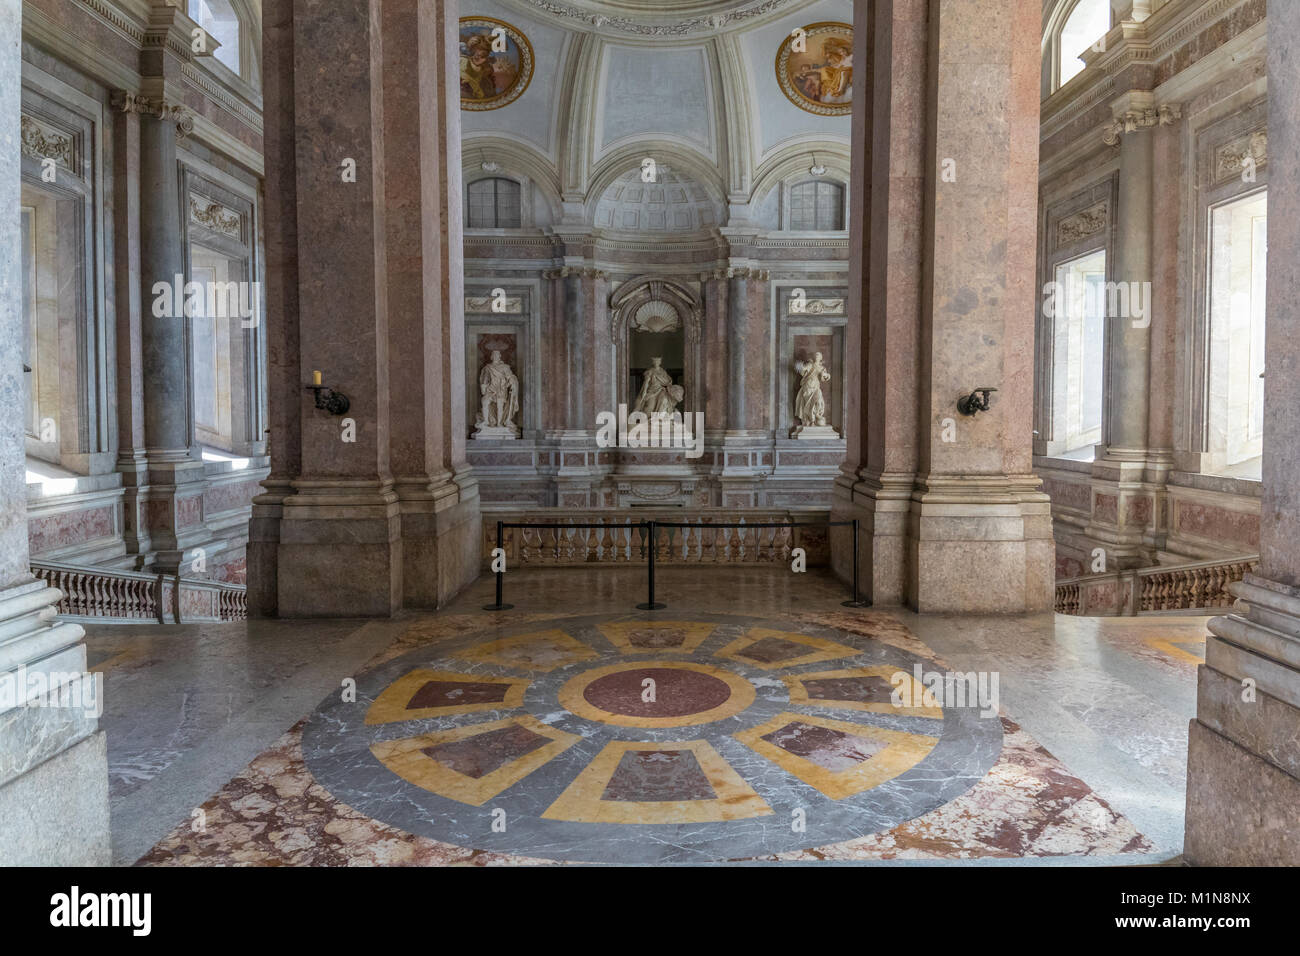 The atrium of the Royal Palace of Caserta Stock Photo